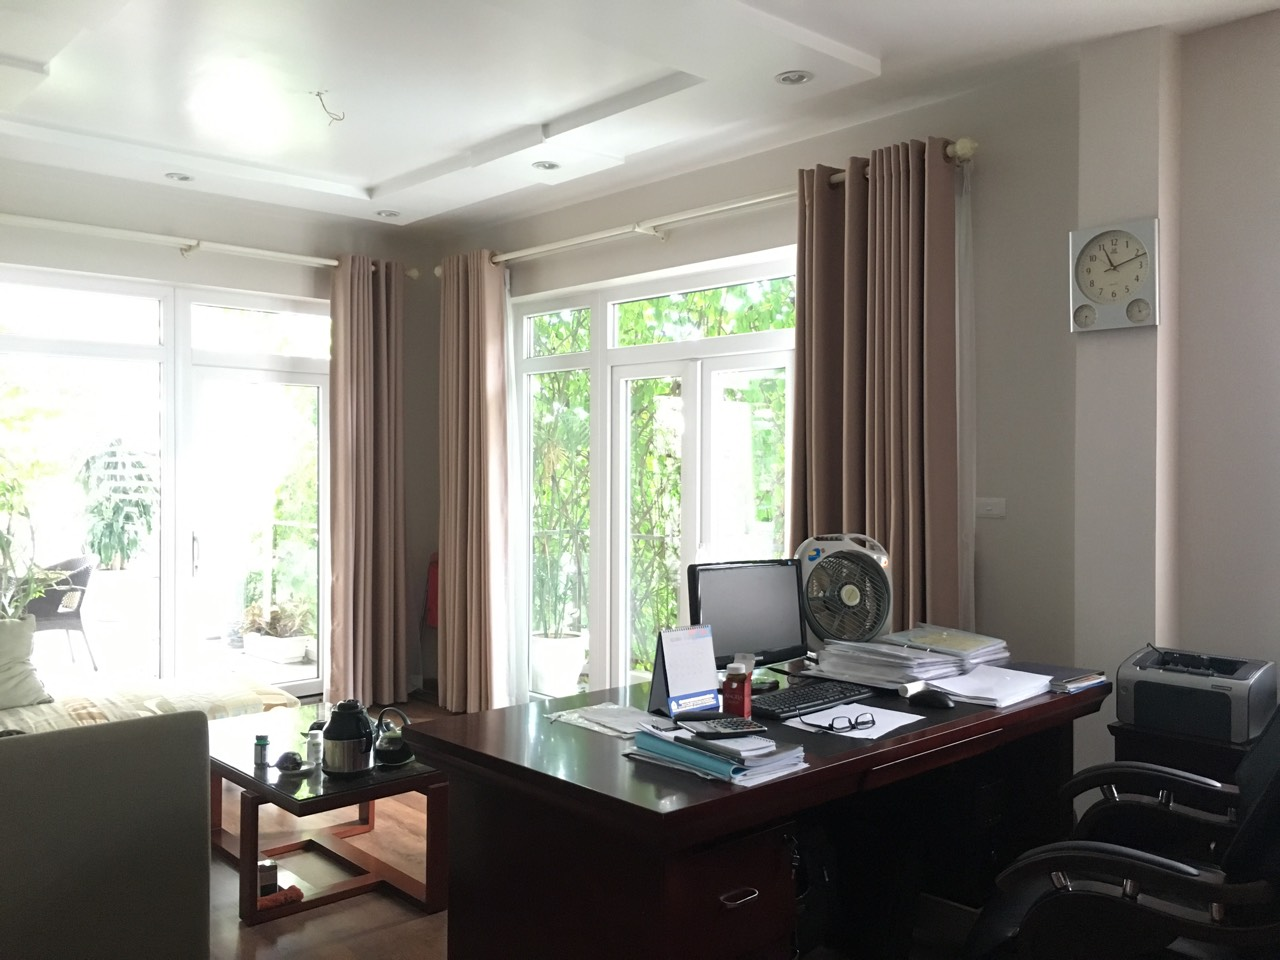 A 5-storey house for rent on Nguyen Hoang Ton - Peach Garden, Tu Liem district!